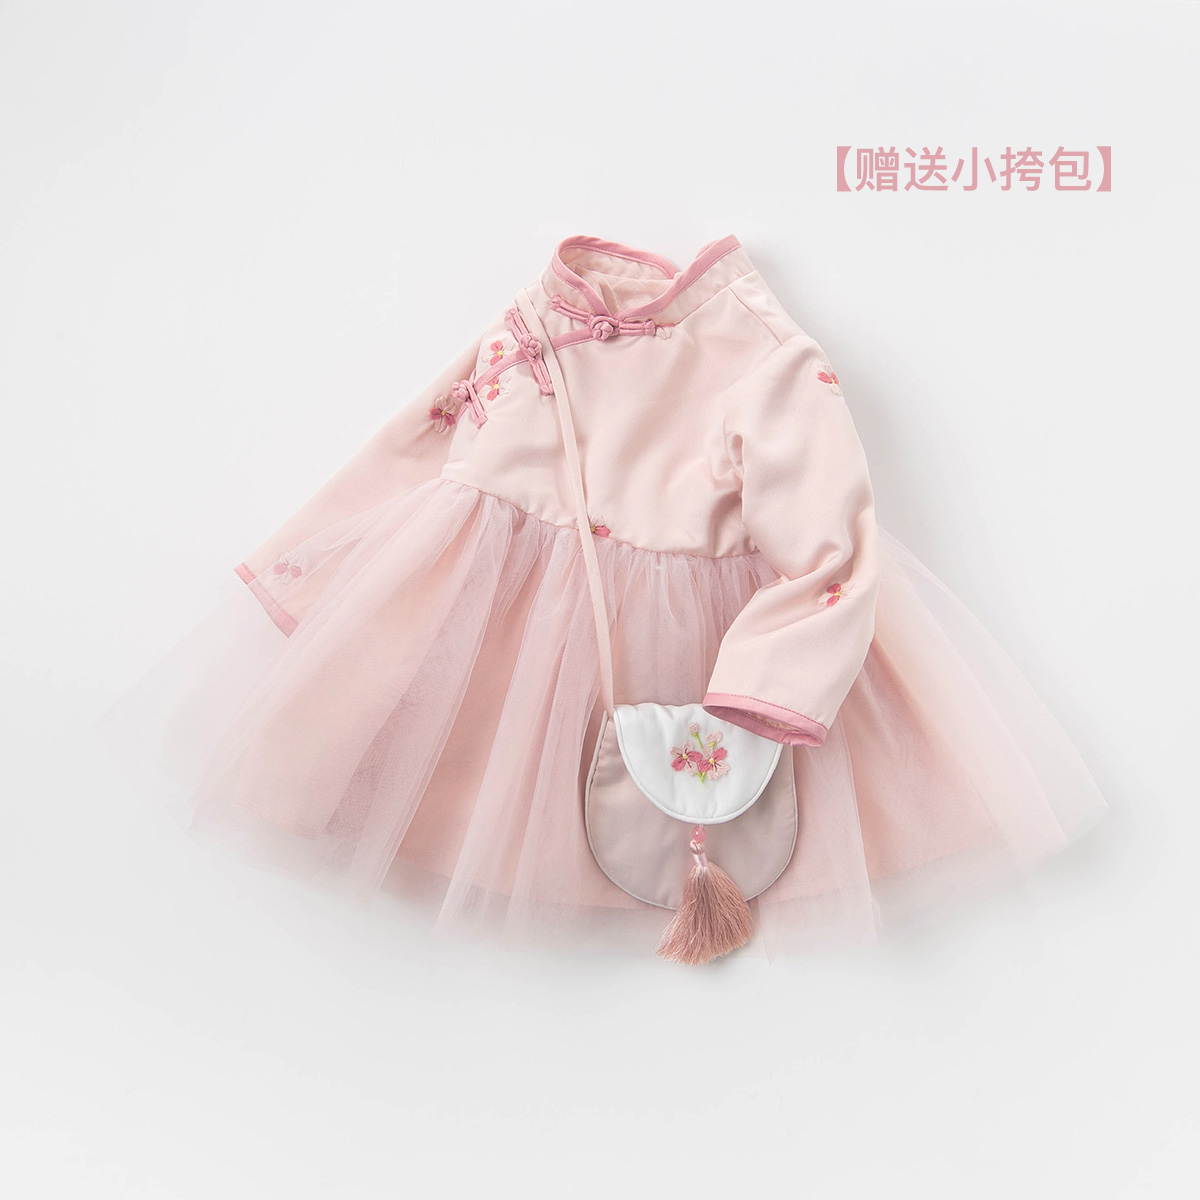 Davebella David Bella ancient girl's skirt spring new baby Chinese style Hanfu dress